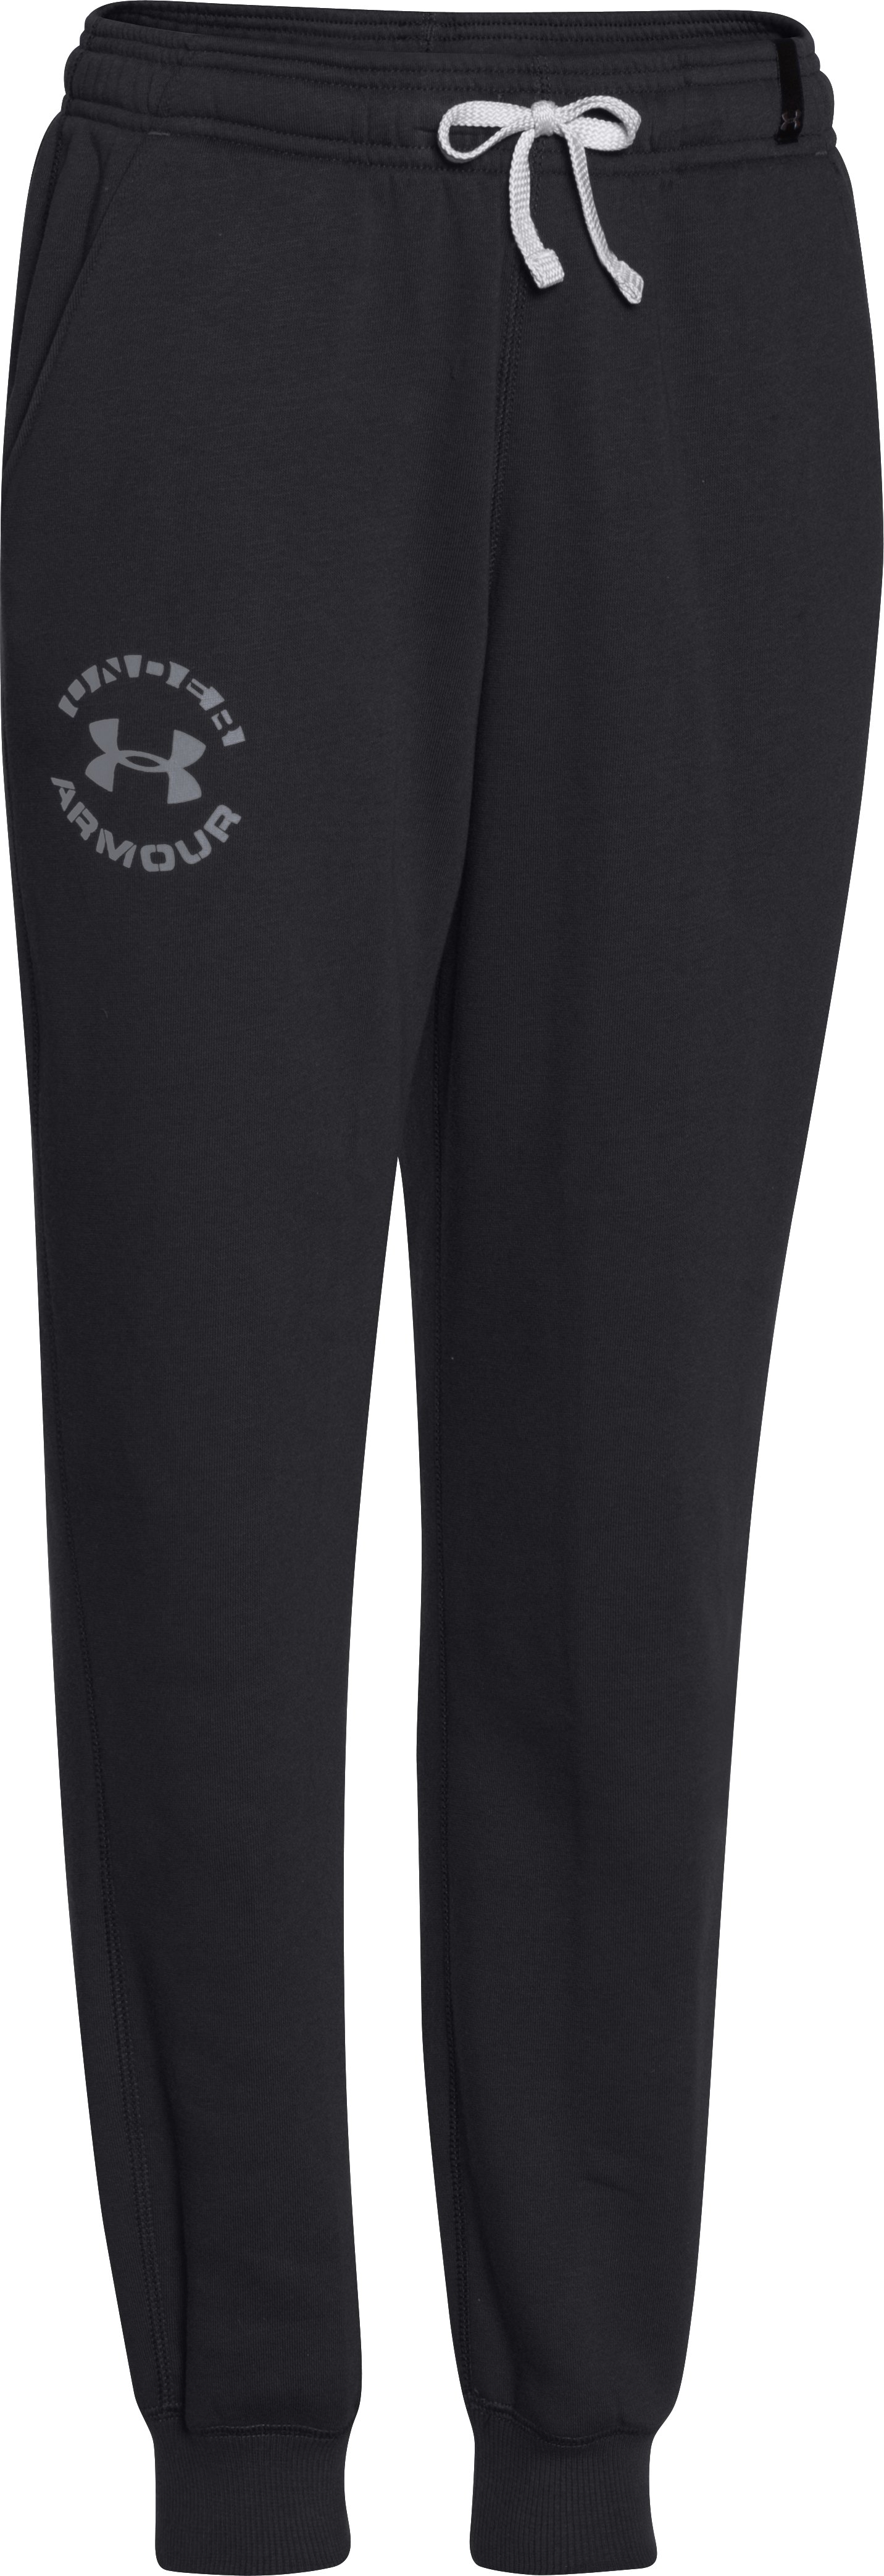 Boys' UA Rival Fleece Jogger Pants, Black